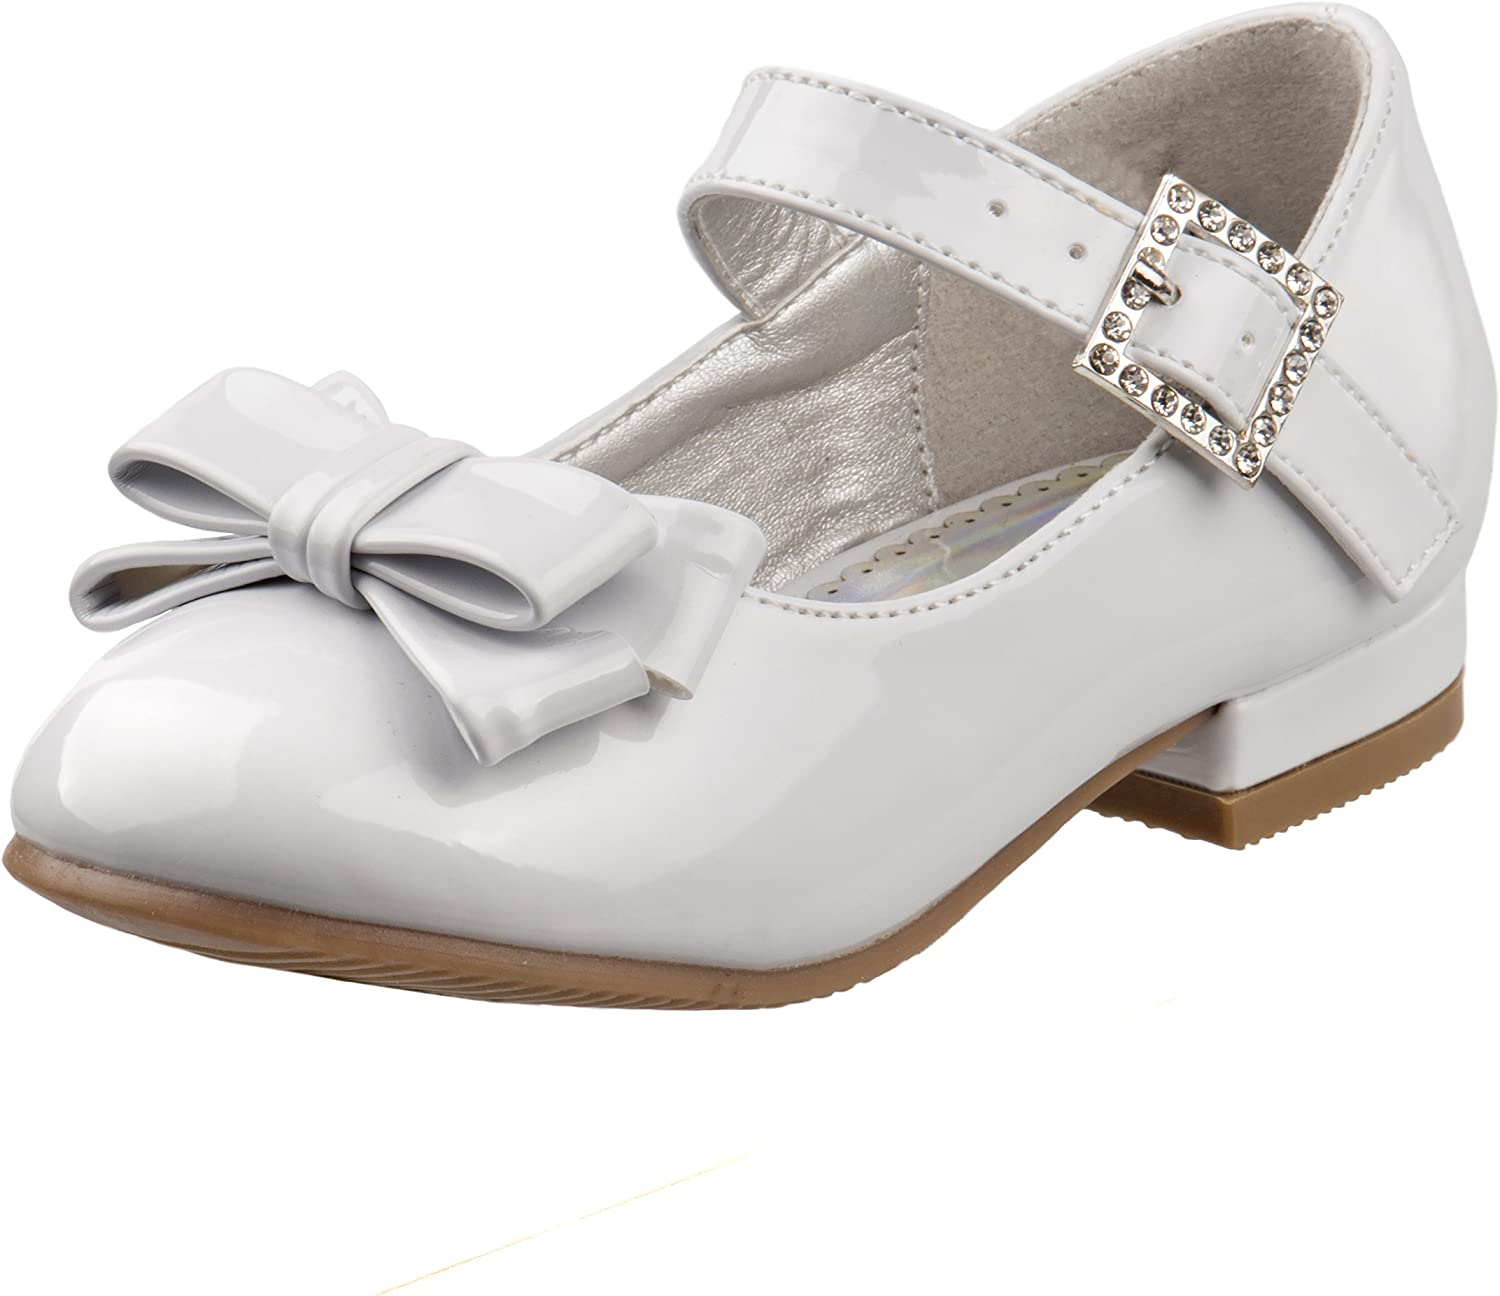 America Dogs Girls Dress Shoes Glitter Ballet Flats with Ankle Strap Buckle